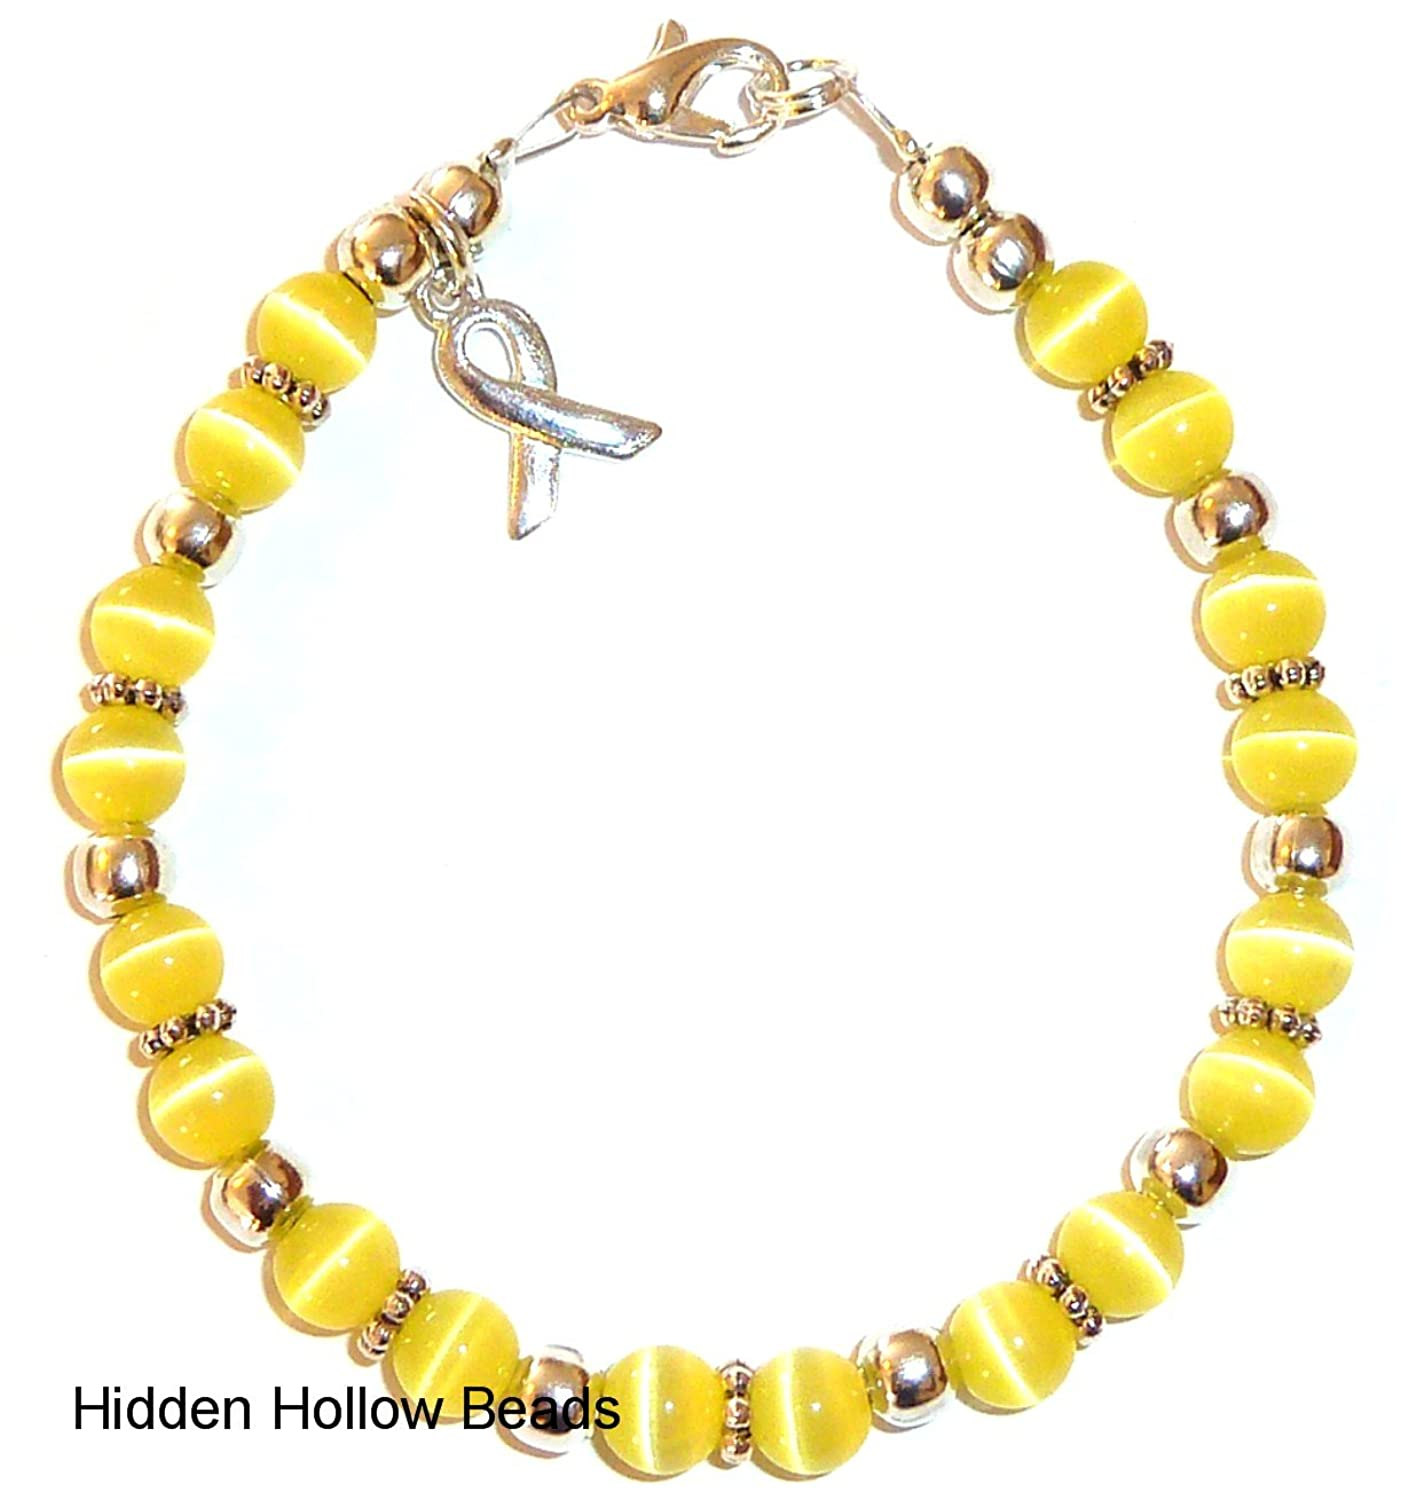 bracelet she adenosarcoma bone ribbon charm believed cancer pin liver bifida osteosarcoma bladder spina yellow